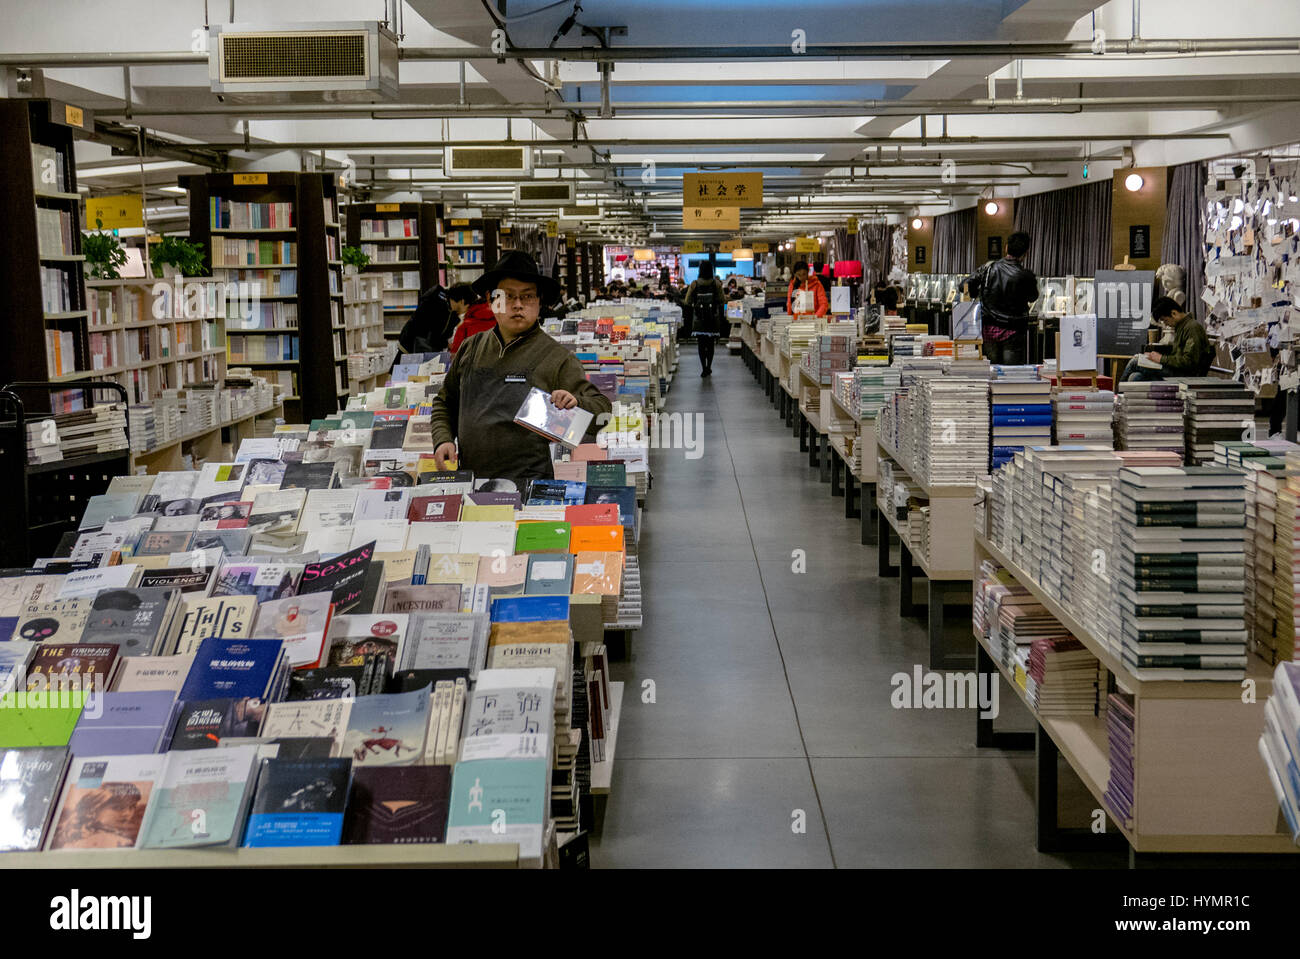 Chinese readers in Librairie Avant-Garde Book store, one of China's most beautiful bookshop Stock Photo